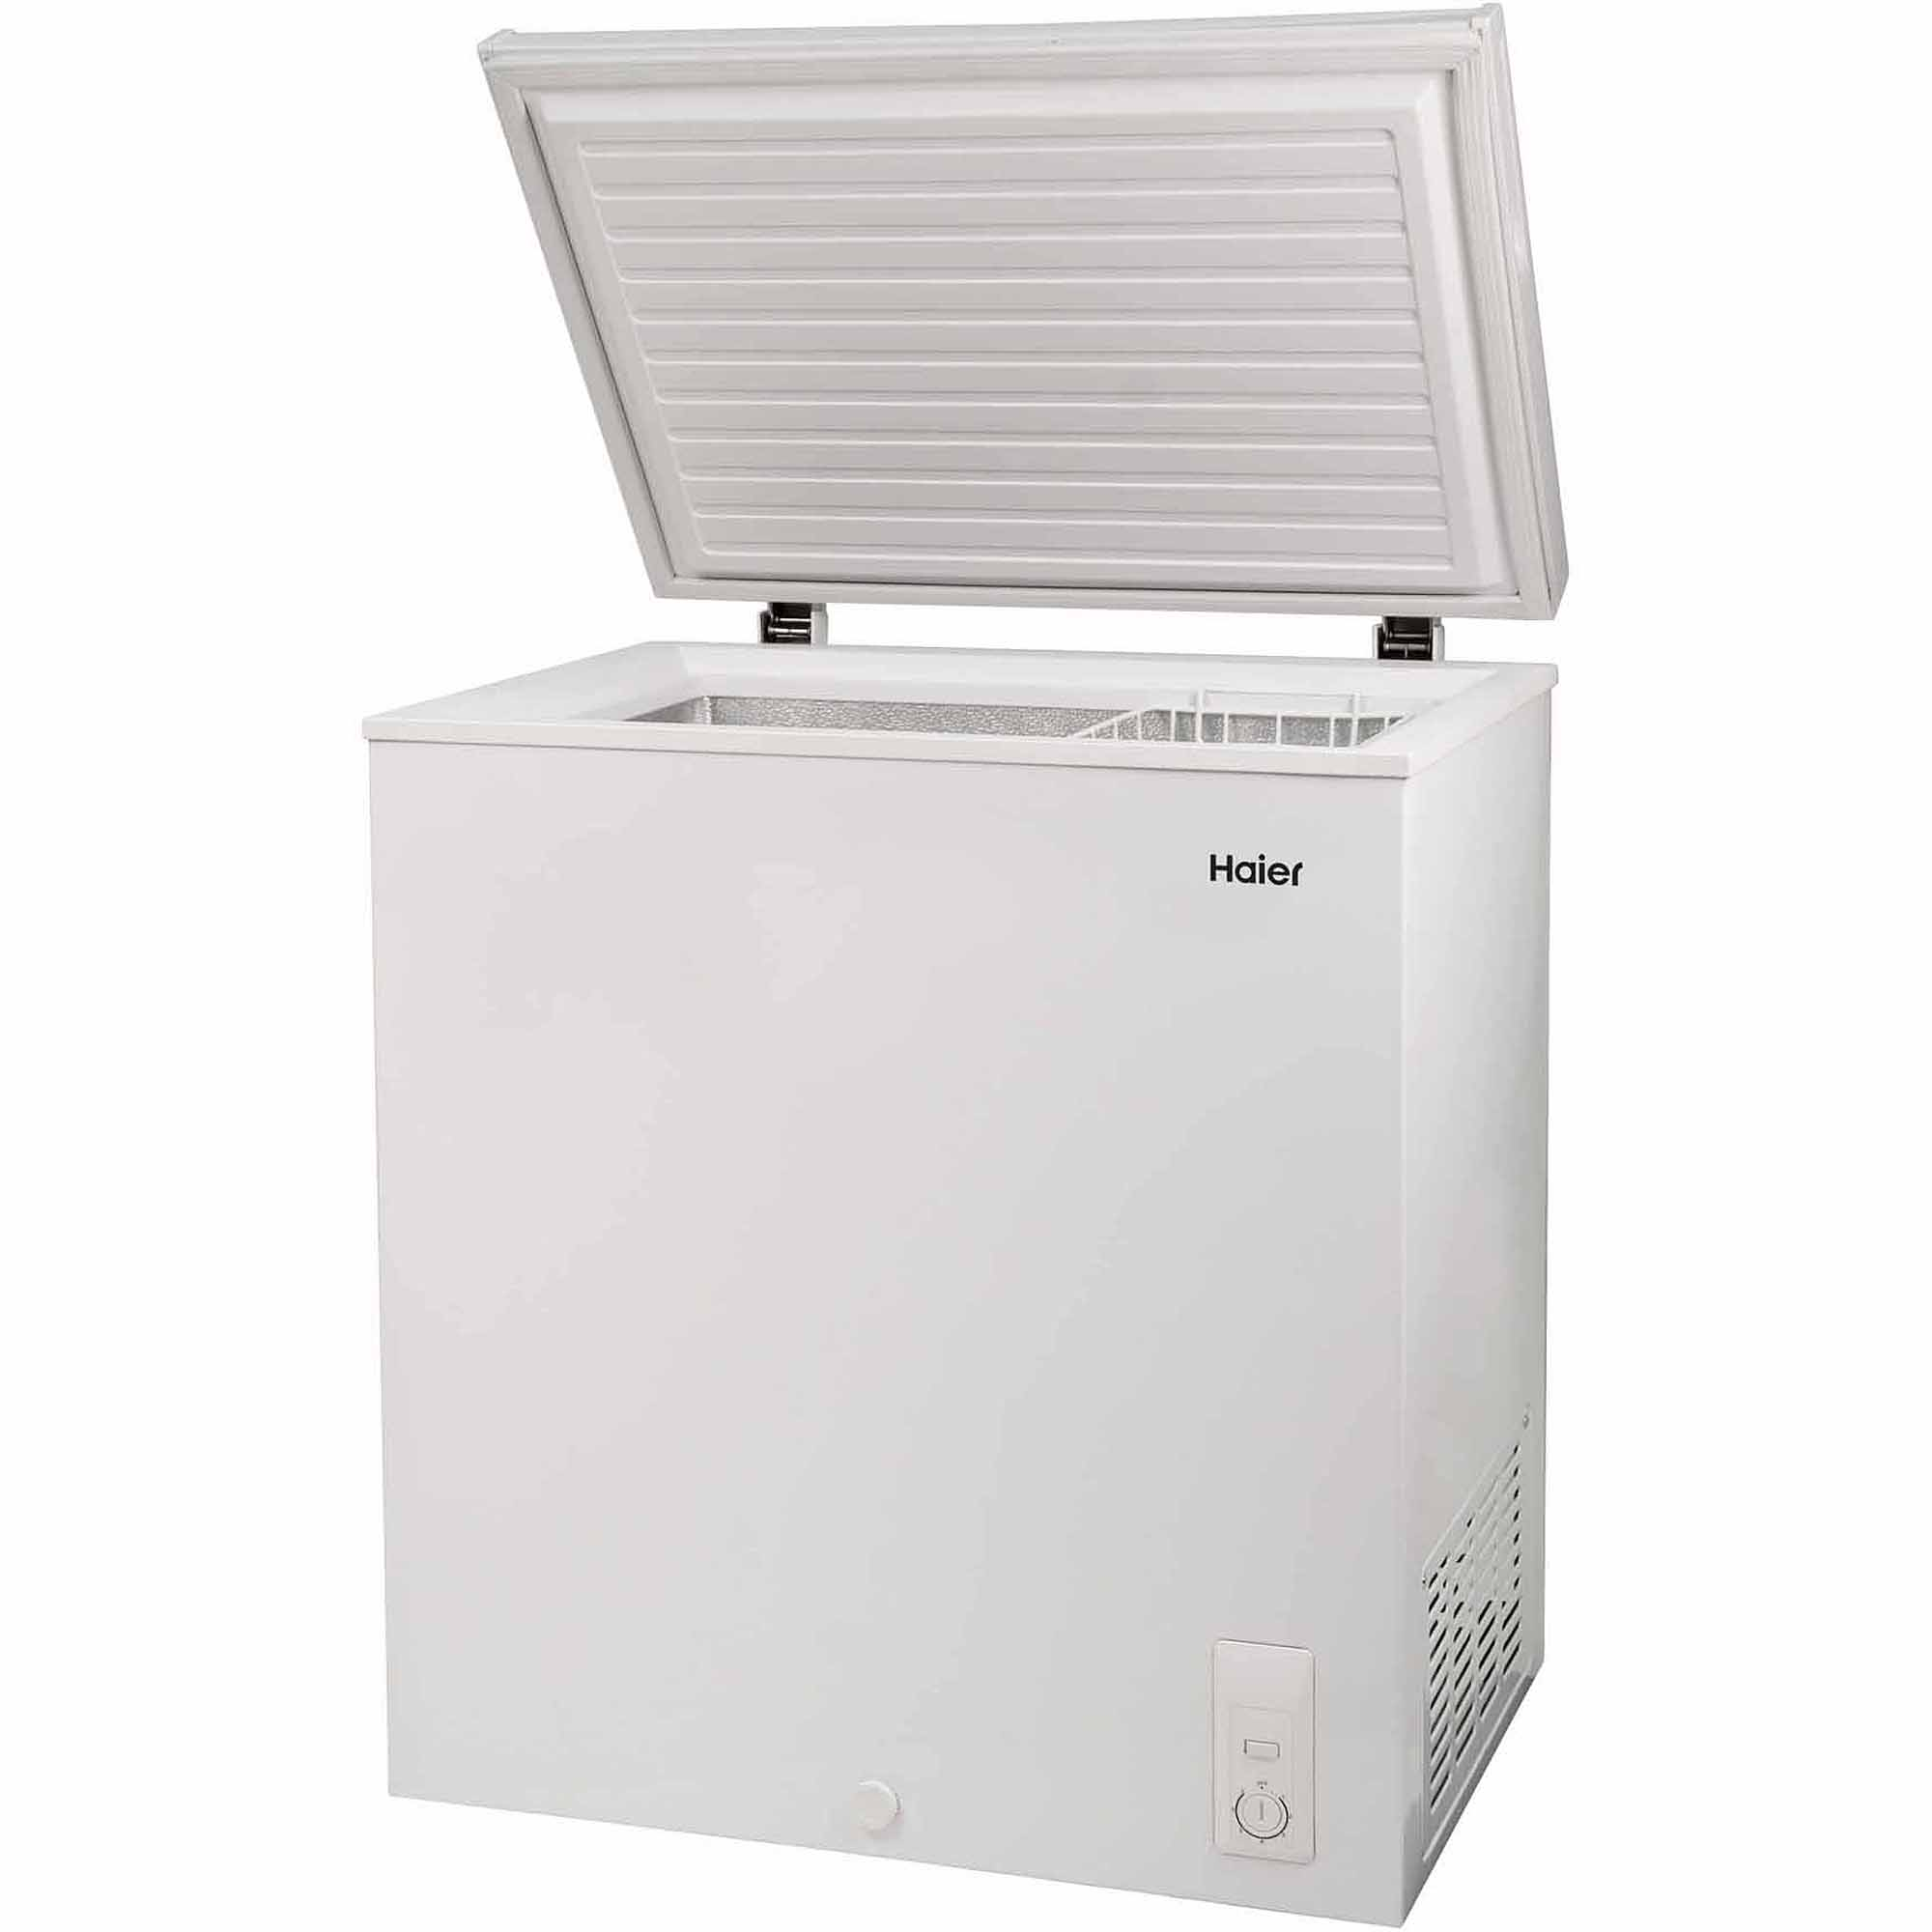 Haier 5.0 cu ft Capacity Chest Freezer, White, HF50CW20W - Walmart.com